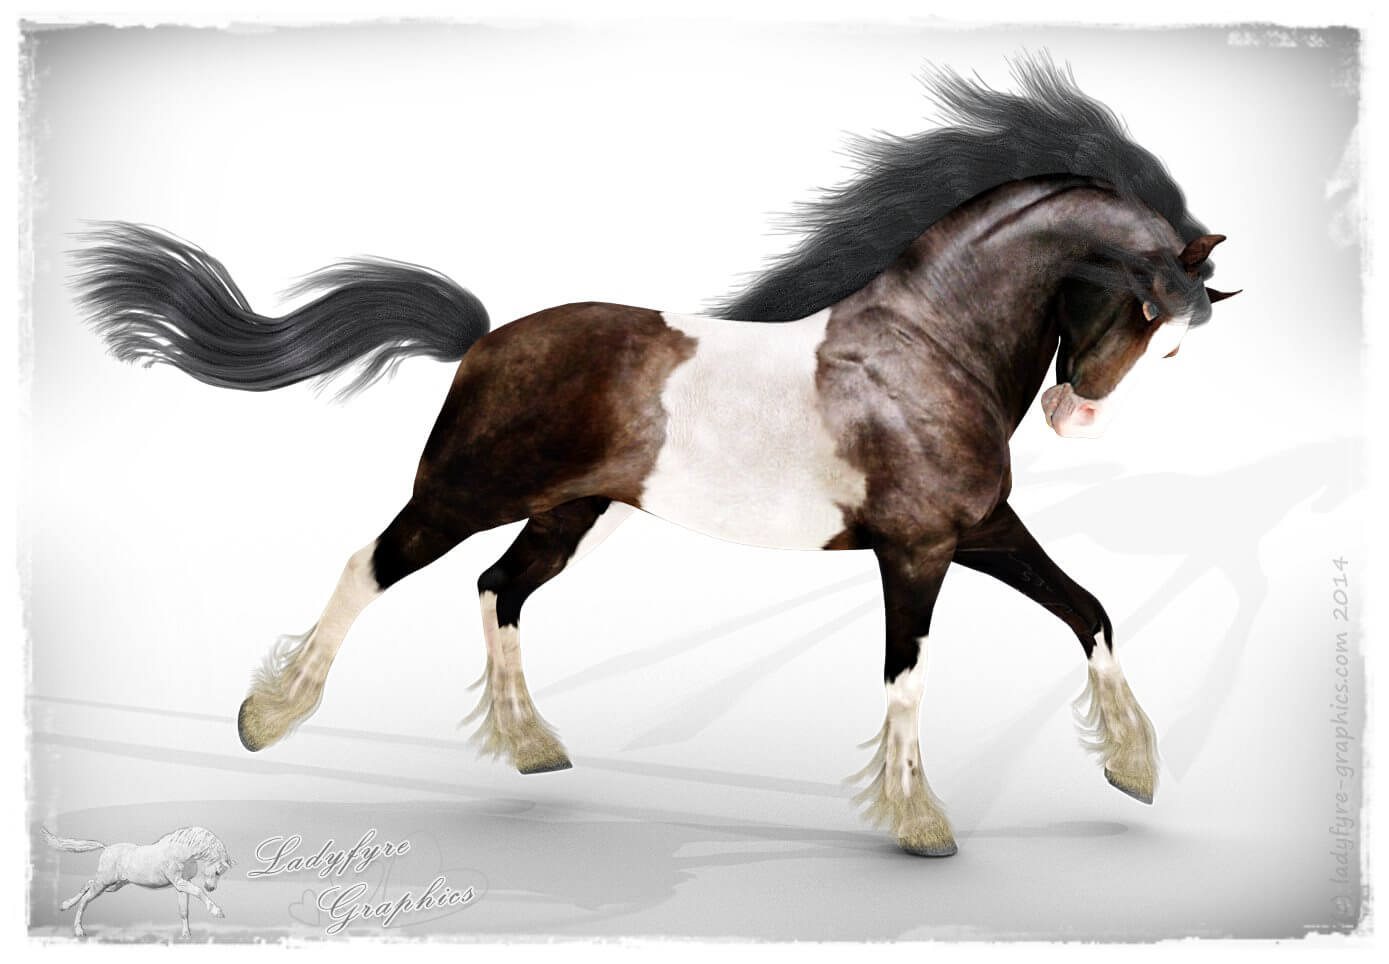 Mil Horse texture on the Hivewire horse via my remap